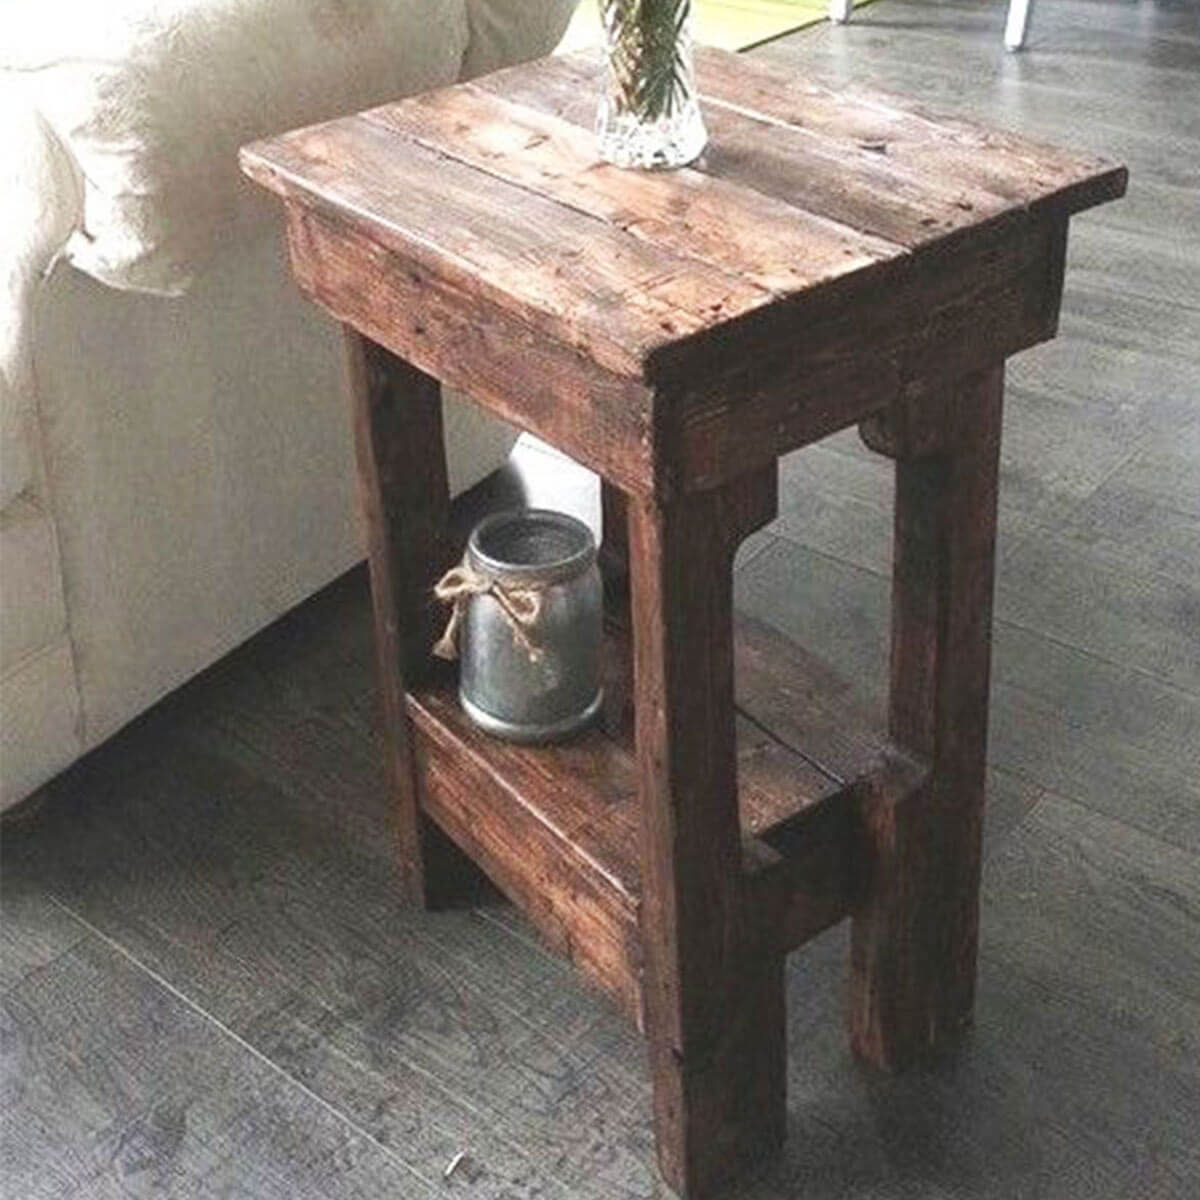 incredible diy end tables simple table ideas the family pallet cool affordable zenfield ashley furniture rustic coffee glass top iron pipe fittings leather couch pillows mini sofa